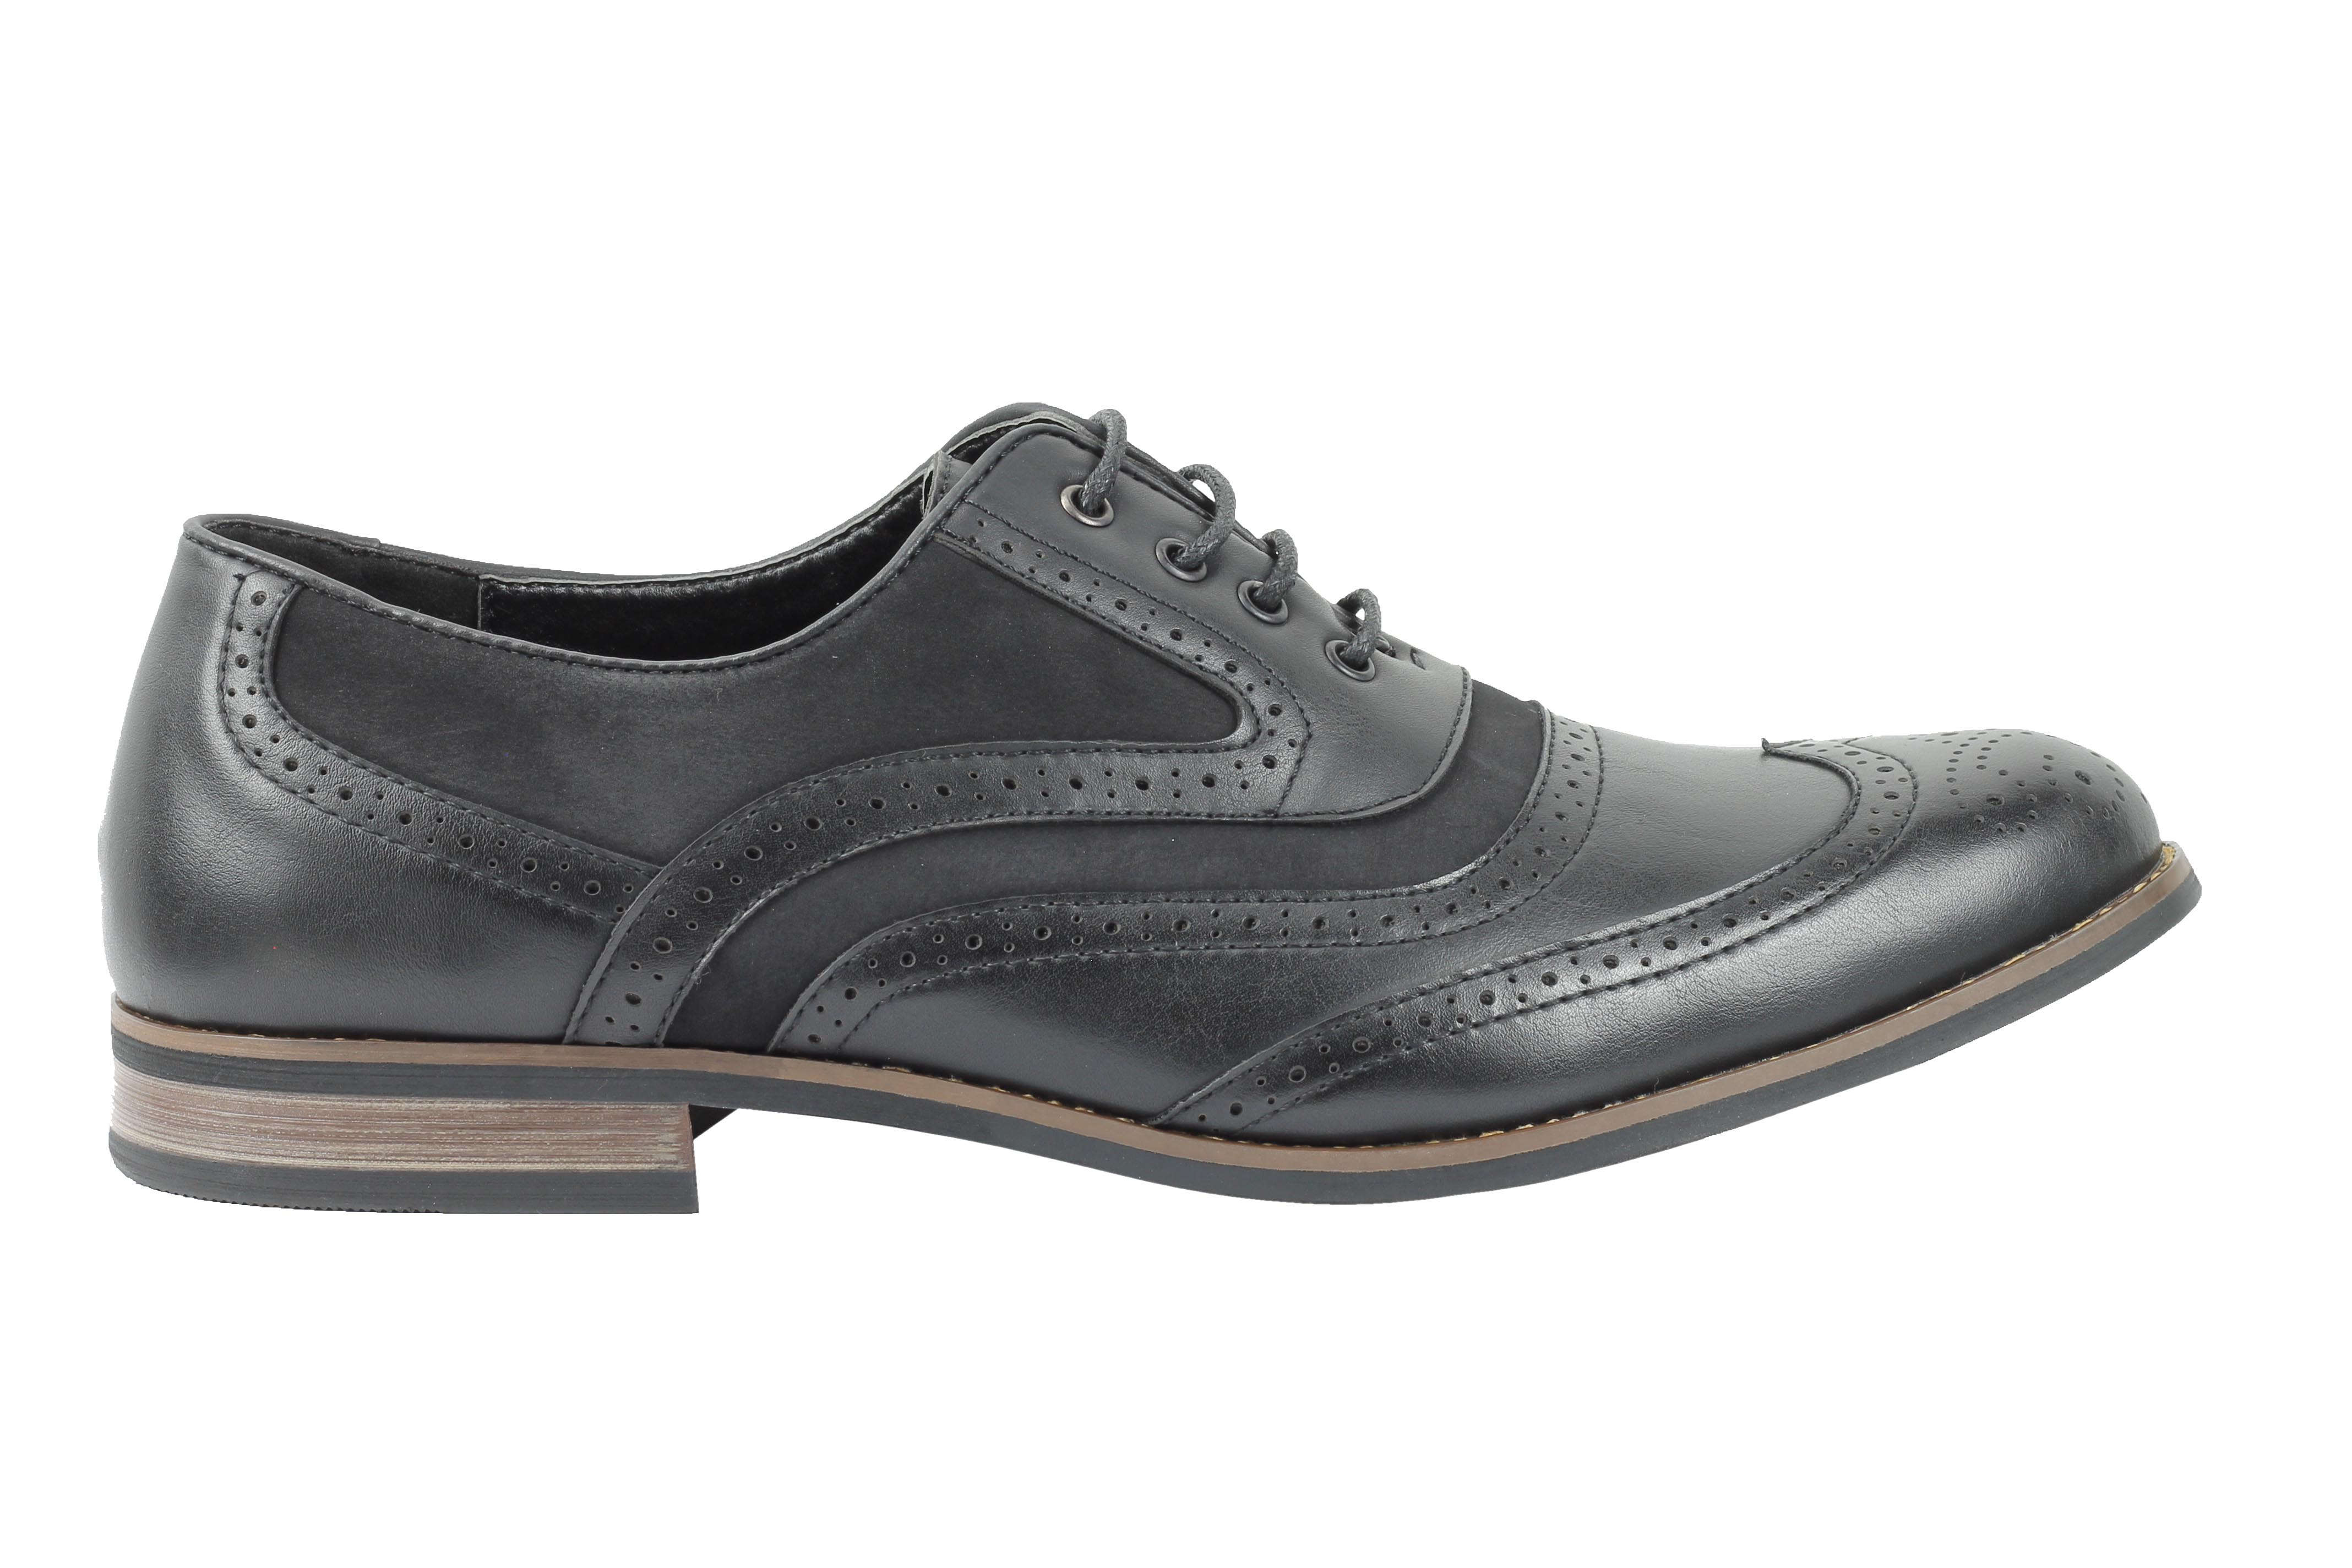 Mens-Retro-Vintage-Wing-Tip-Leather-Brogue-Smart-Casual-Office-Shoes-UK-Sizes thumbnail 4